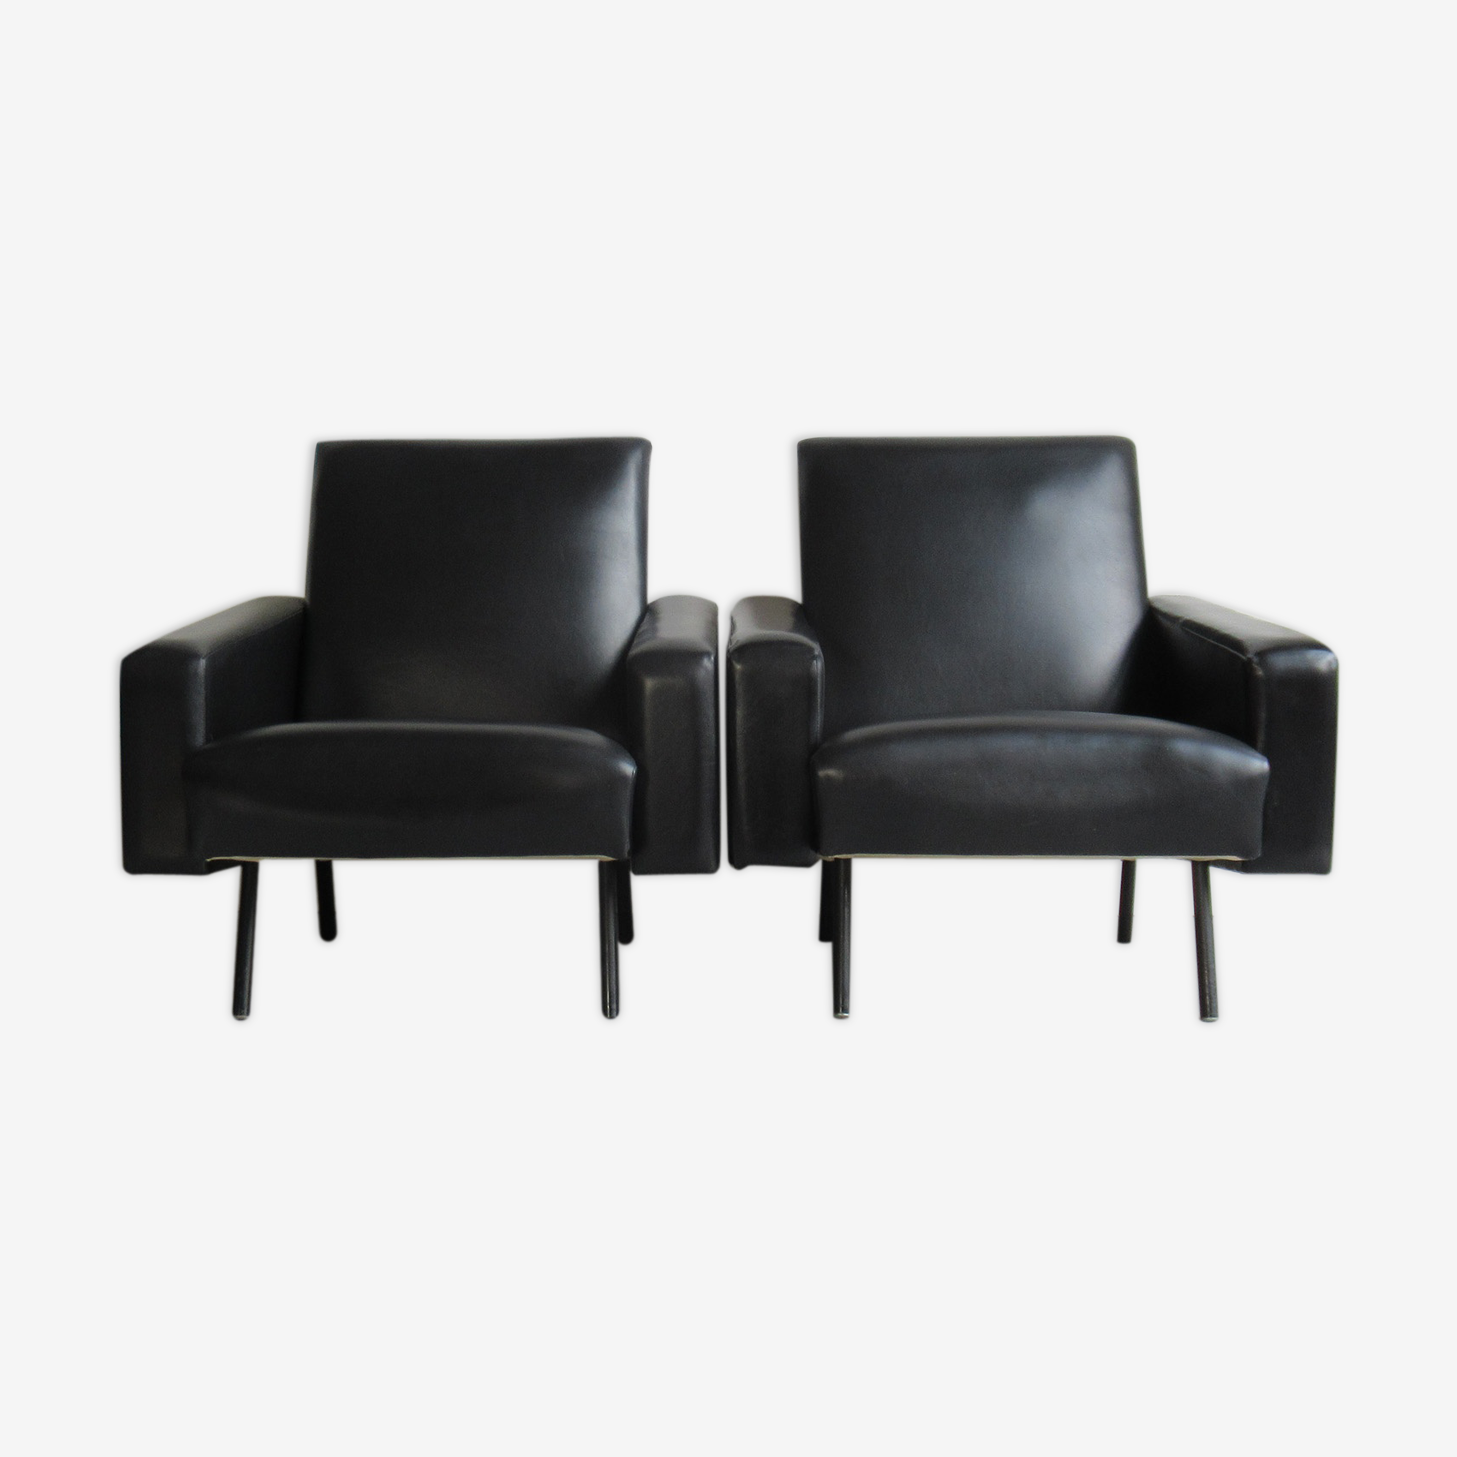 """Pair of armchairs """"Mexico"""" of Pierre Guariche for Meurop, 1960 s"""